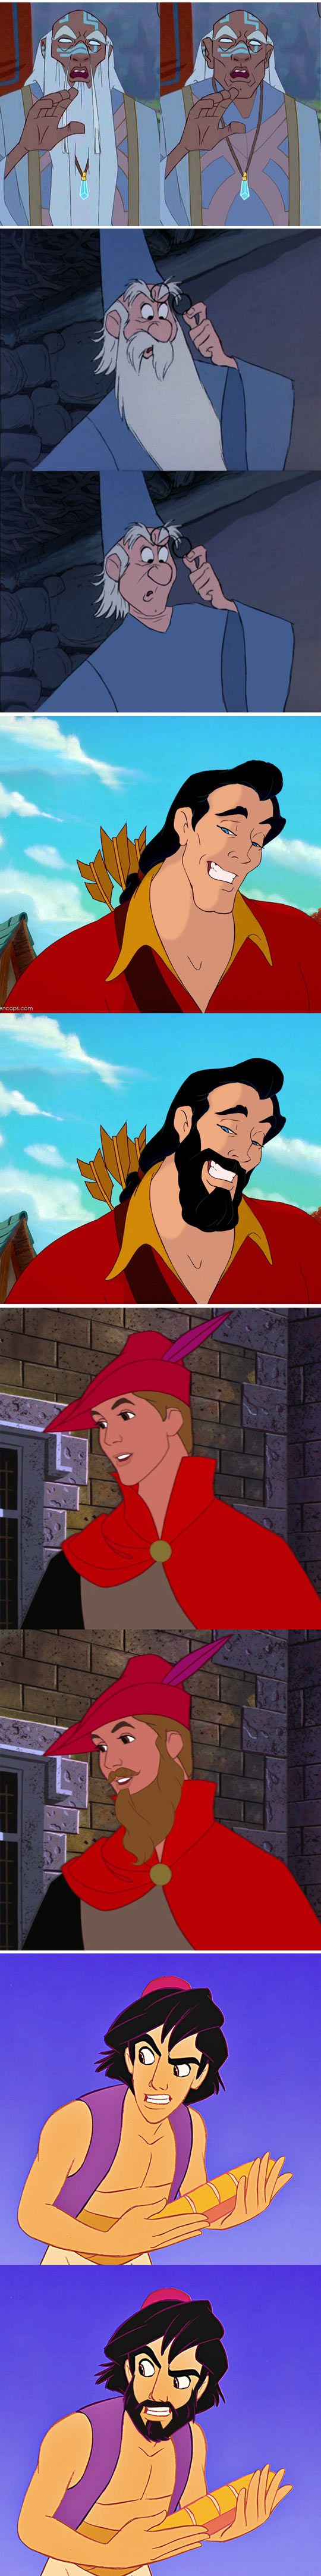 Characters from Disney movies without beards...